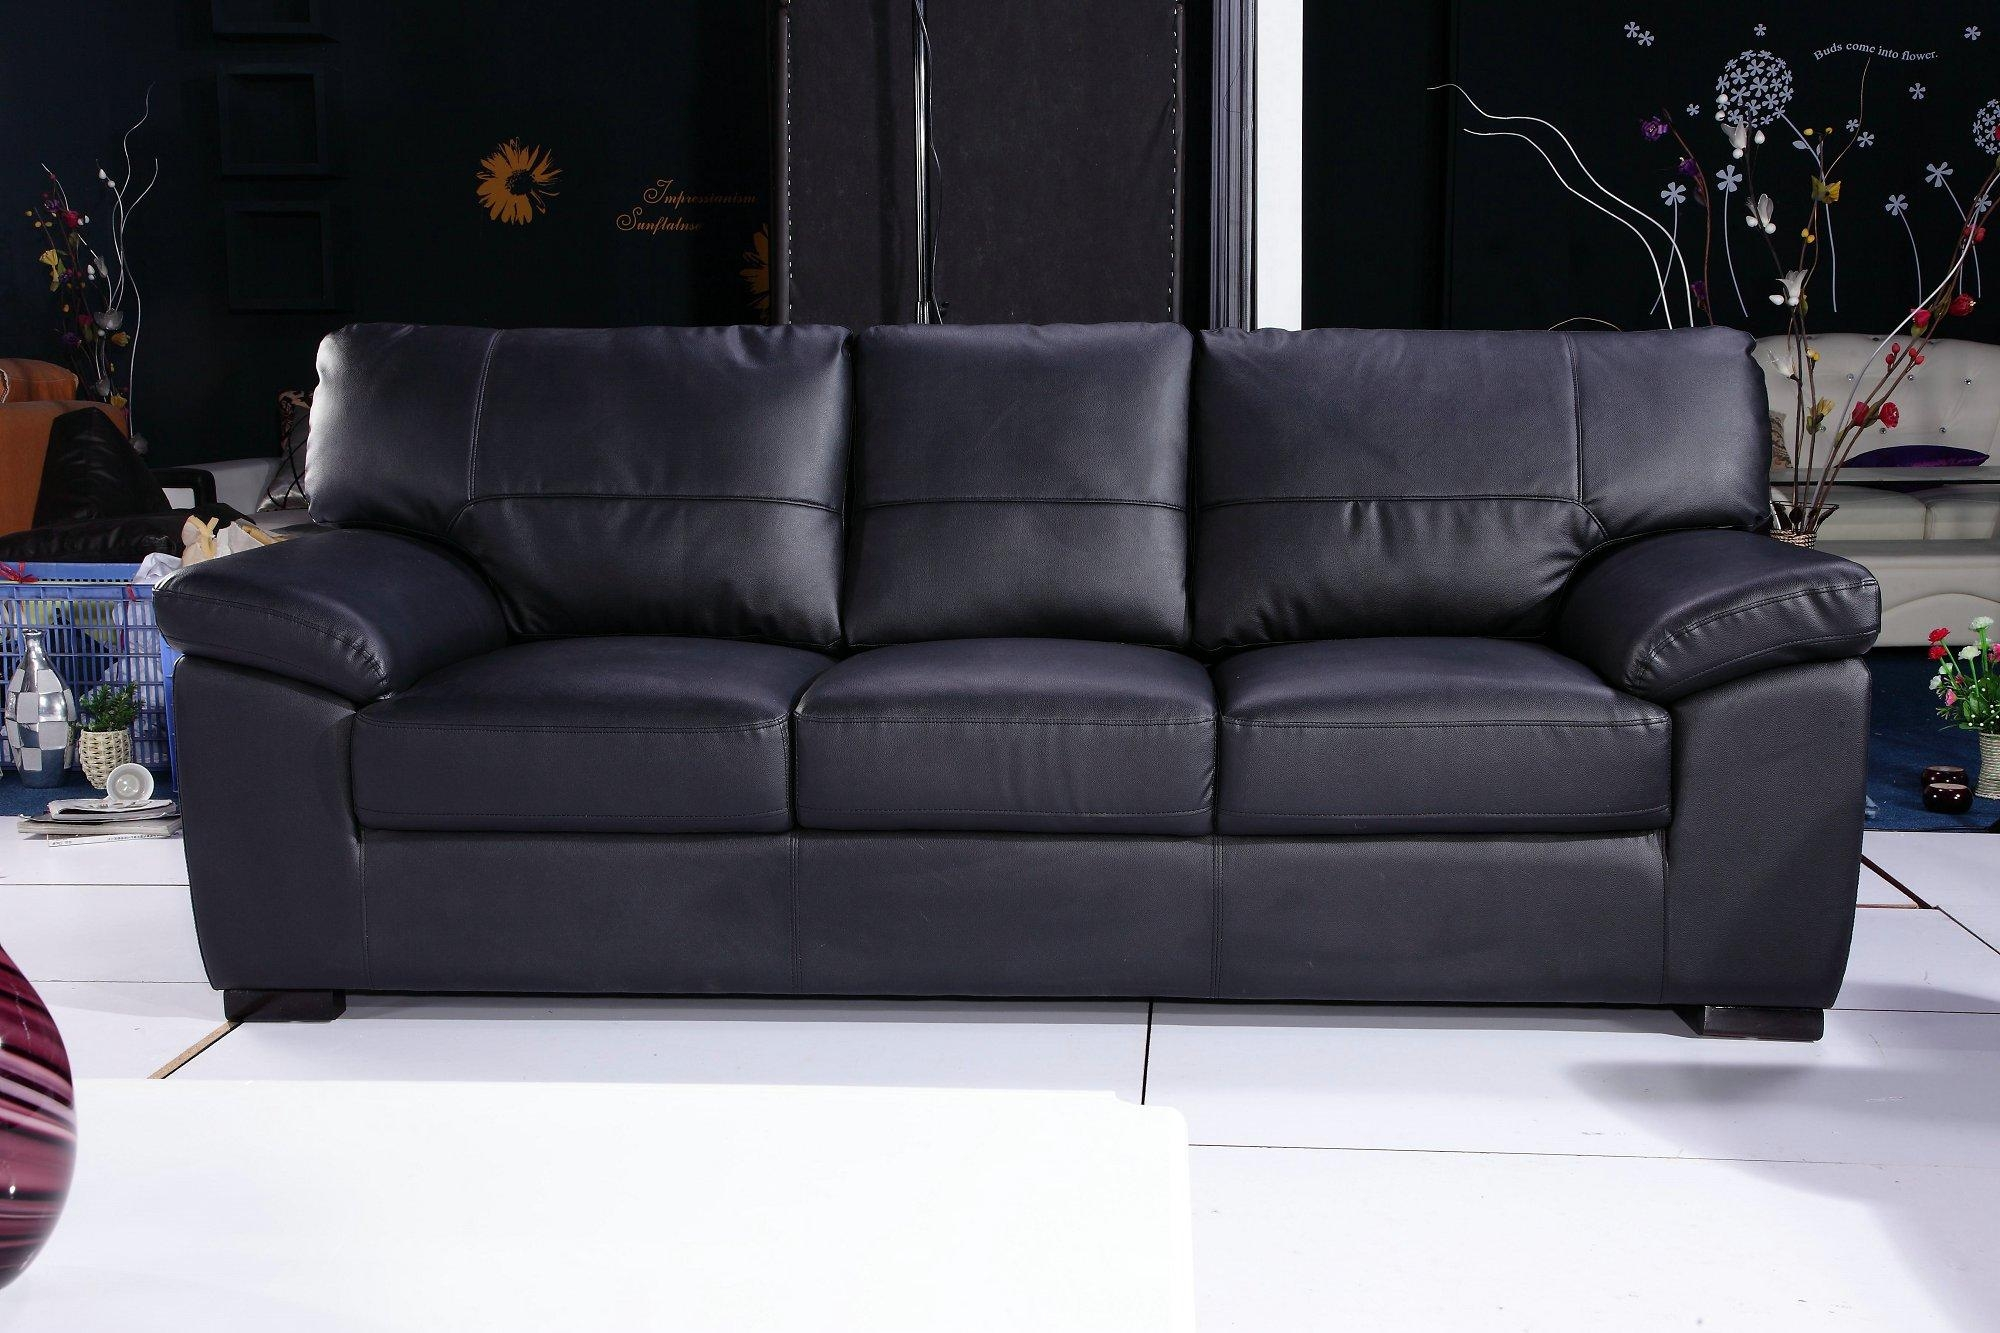 3 Seater Leather Sofas – Aftdth Inside 3 Seater Leather Sofas (View 2 of 20)